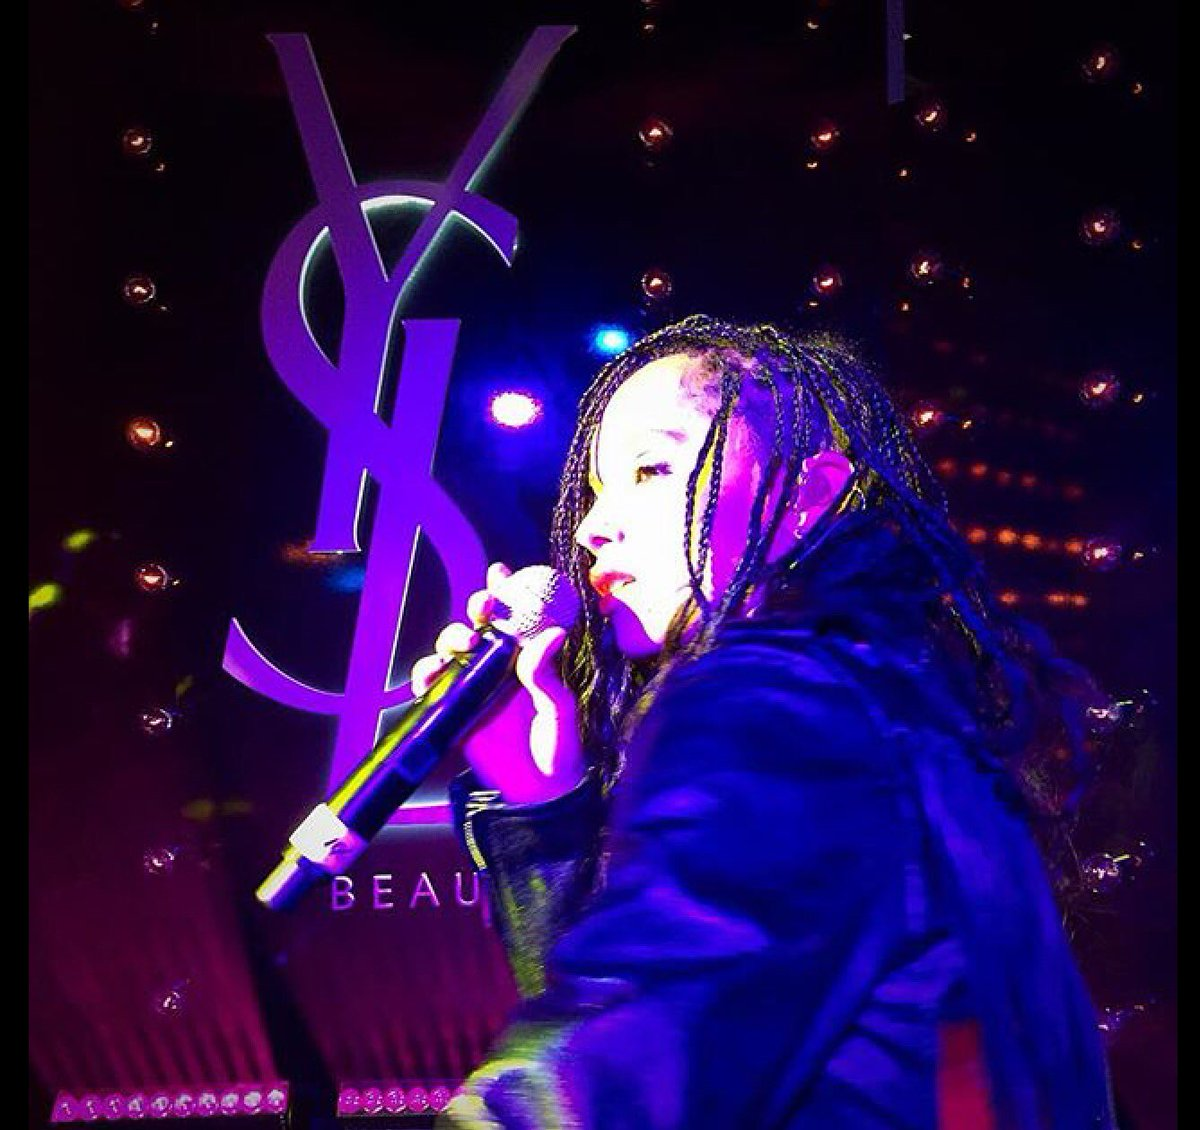 Thanks for a Lovely Evening @yslbeauty  @YSL @lolawolfband #Lolawolf #MascaraVinylCouture #YSLBeauty